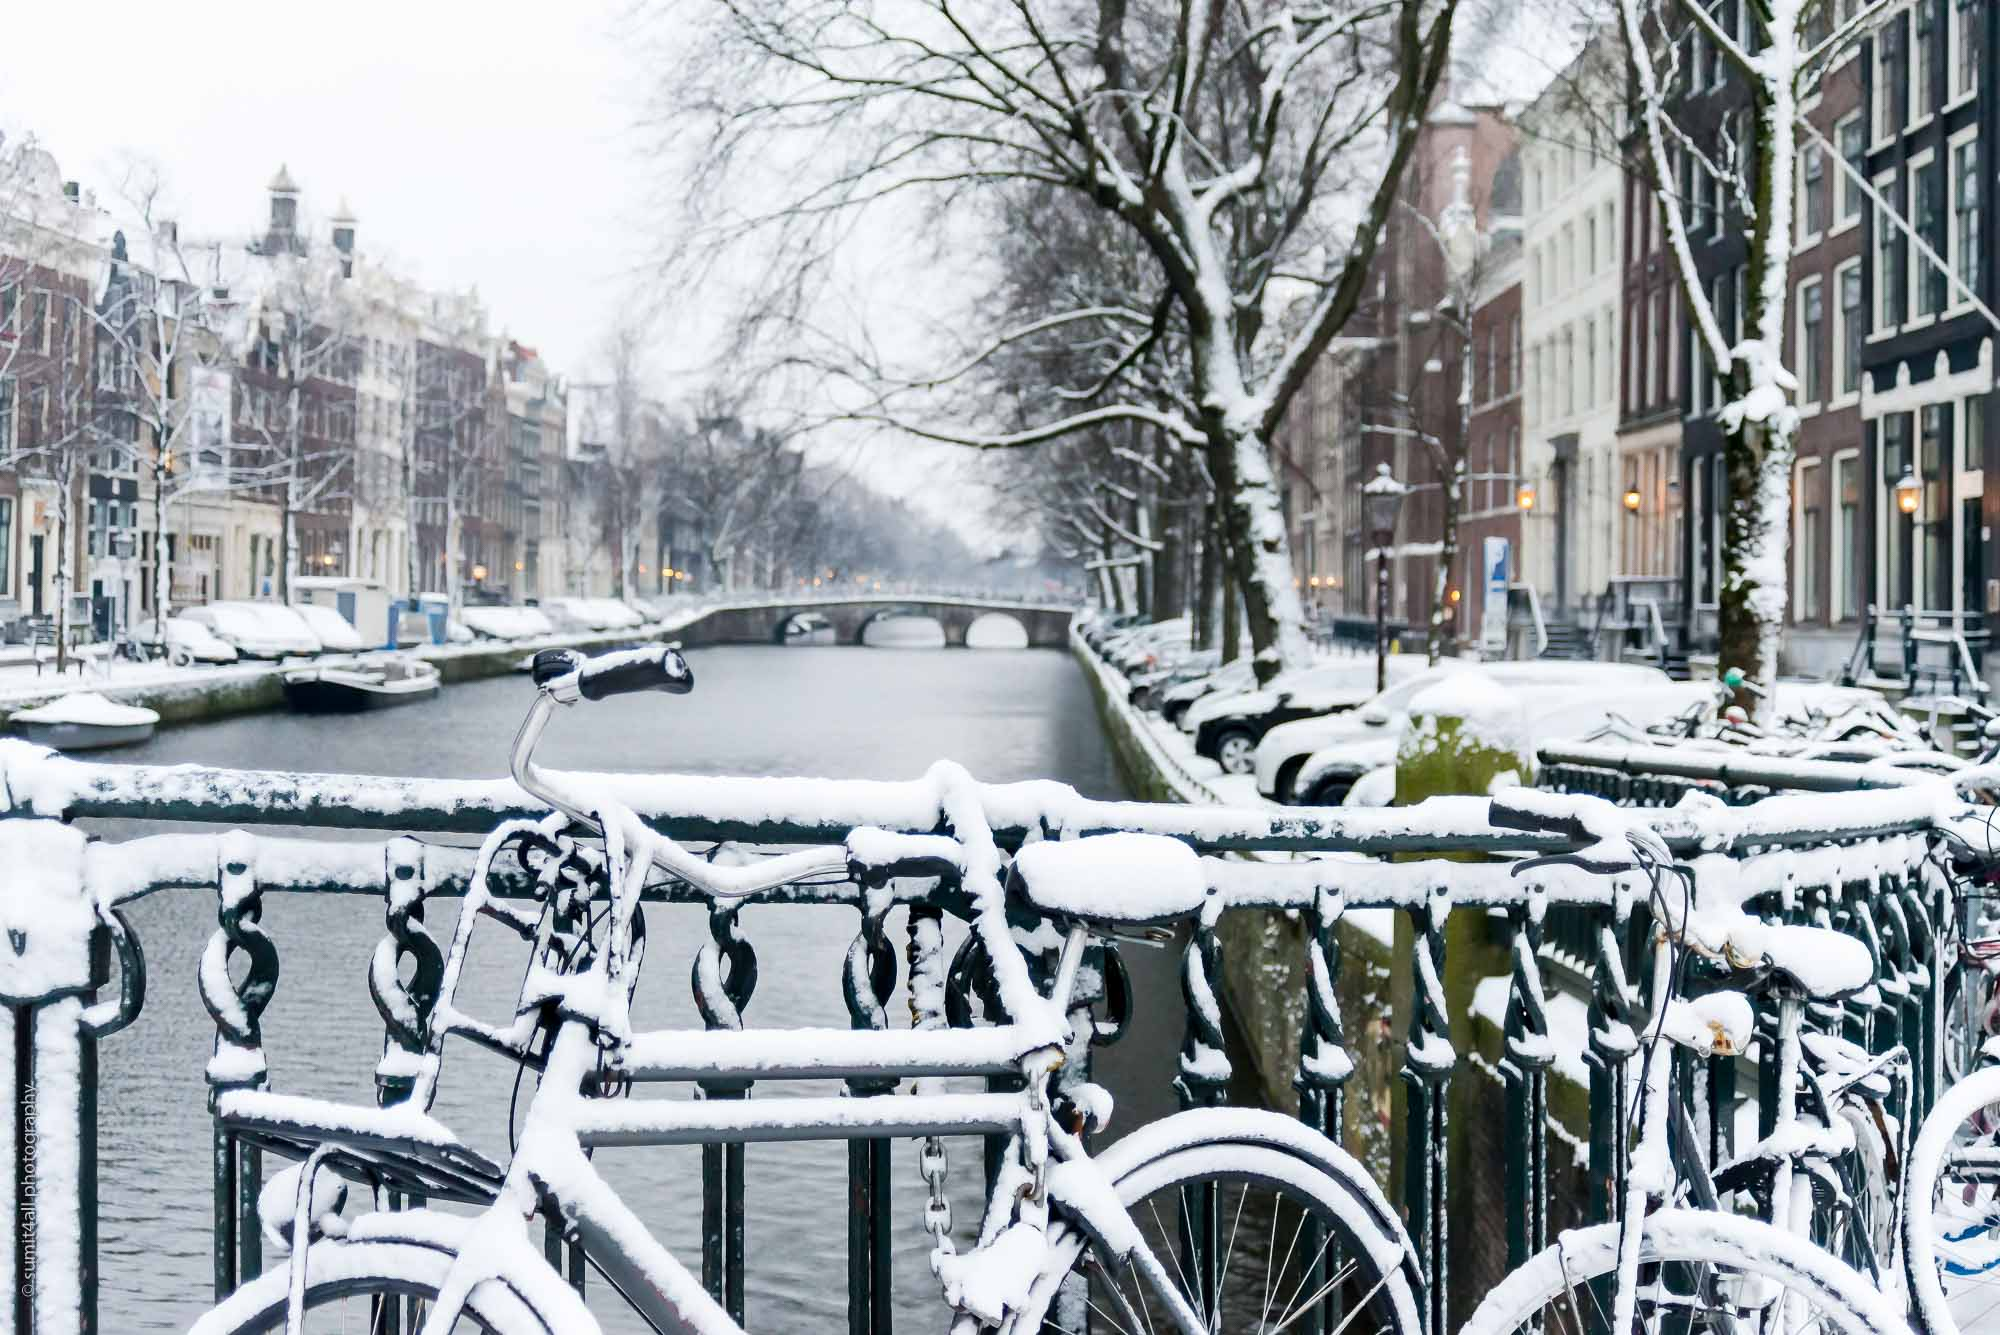 A Snowy Day in Amsterdam